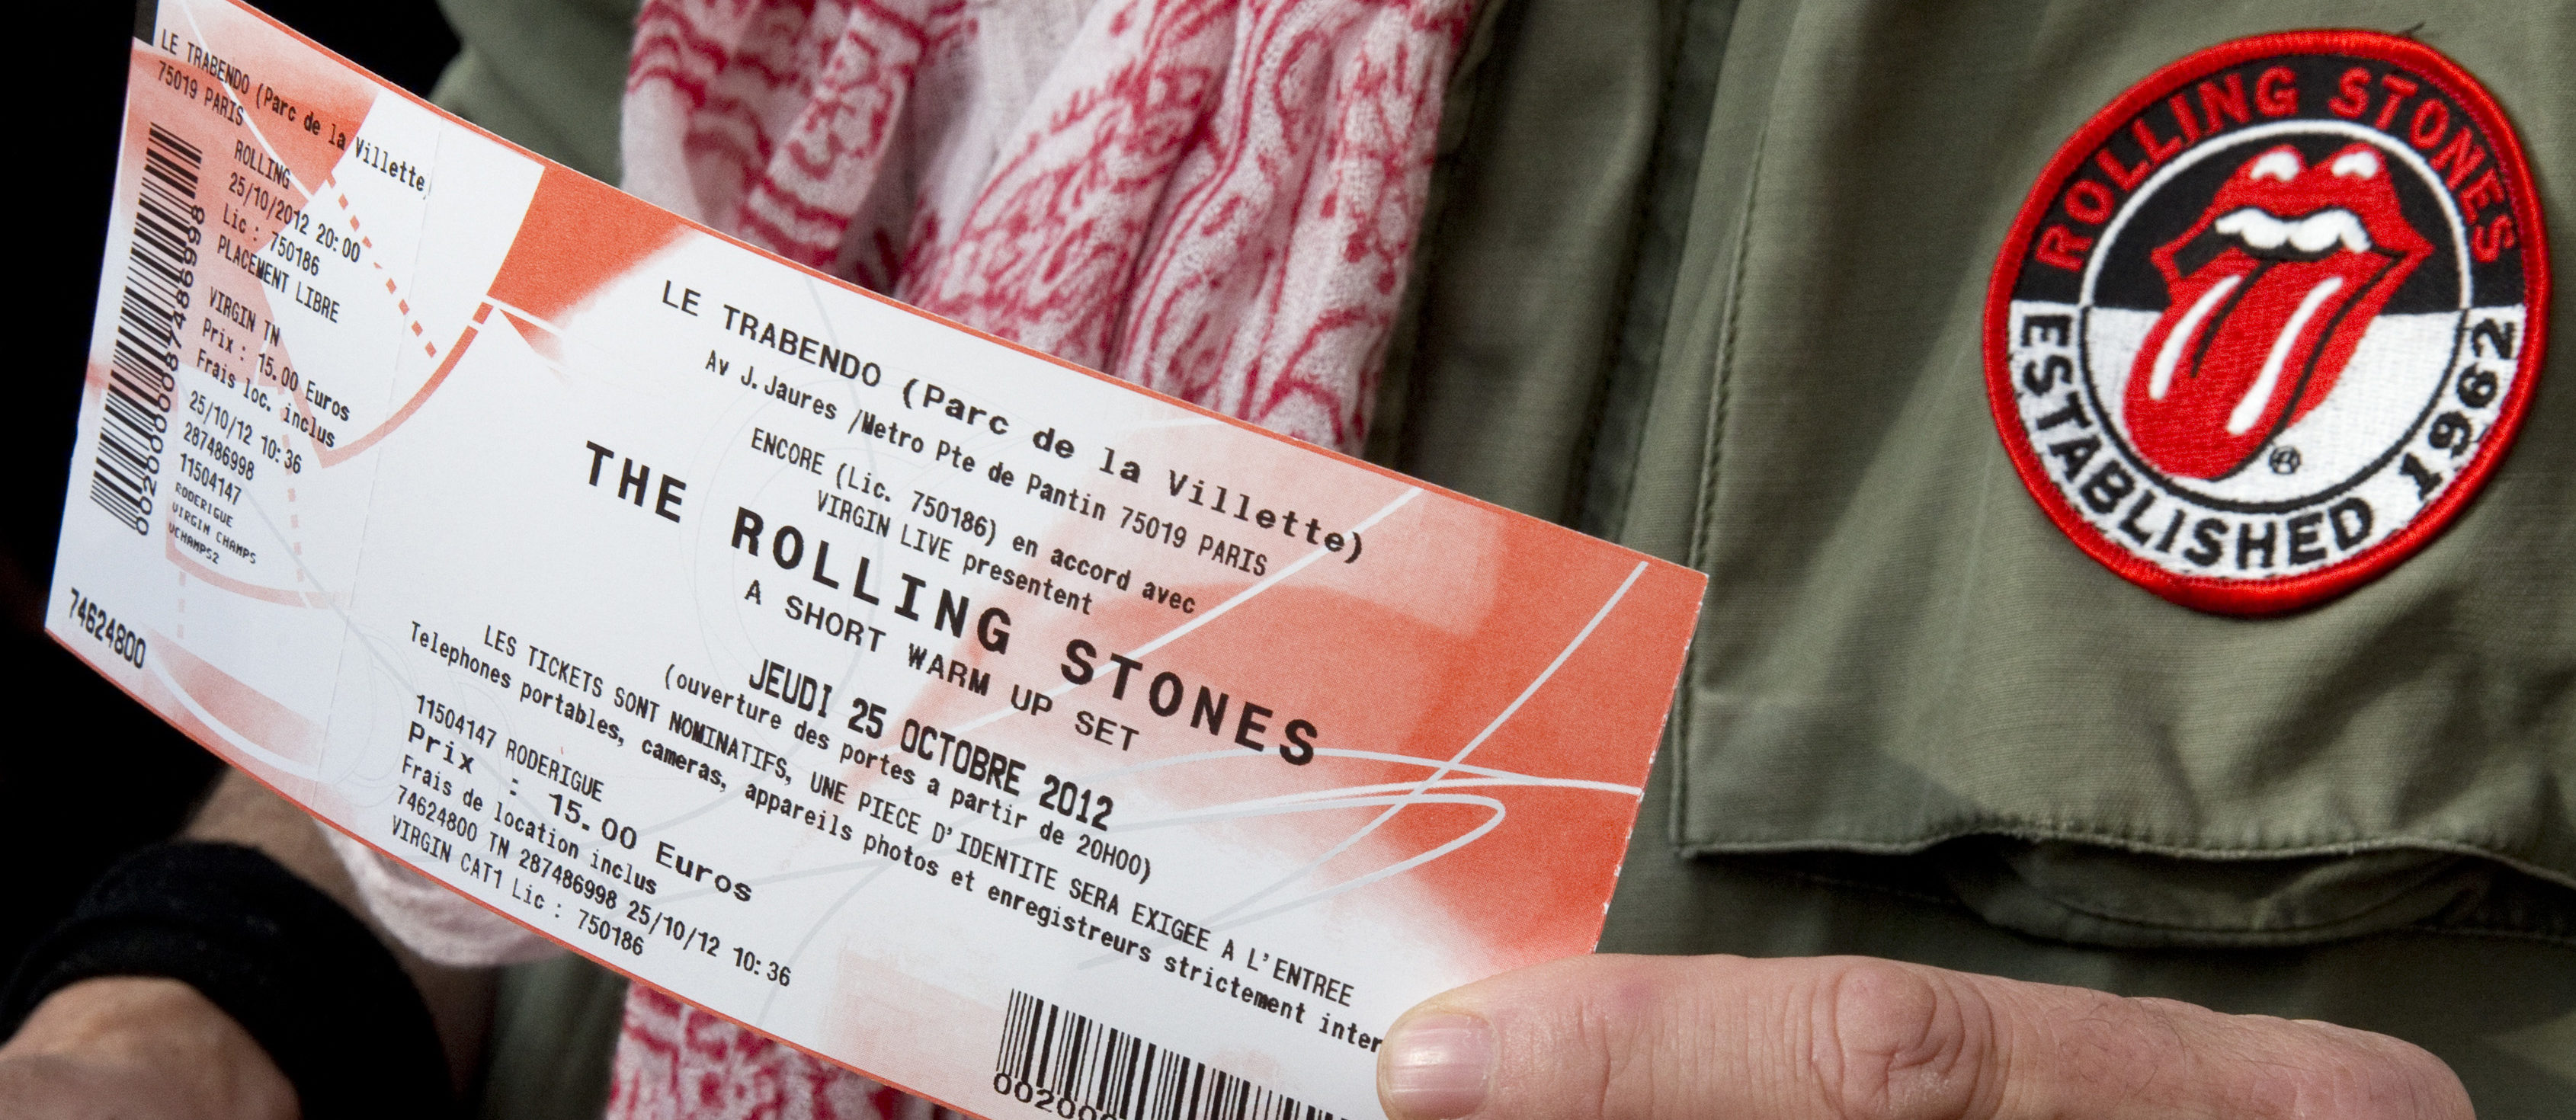 A Rolling Stones fan displays two tickets he purchased for a short warm-up gig in Paris October 25, 2012 as the group prepares for a series of 50th anniversary concerts later this year. The Rolling Stones will perform in Paris later on Thursday for a few hundred fans who bought tickets for 15 euros ($19.45) each at a music store in the centre of the city. REUTERS/Philippe Wojazer (FRANCE - Tags: ENTERTAINMENT BUSINESS) - PM1E8AP0Y5101